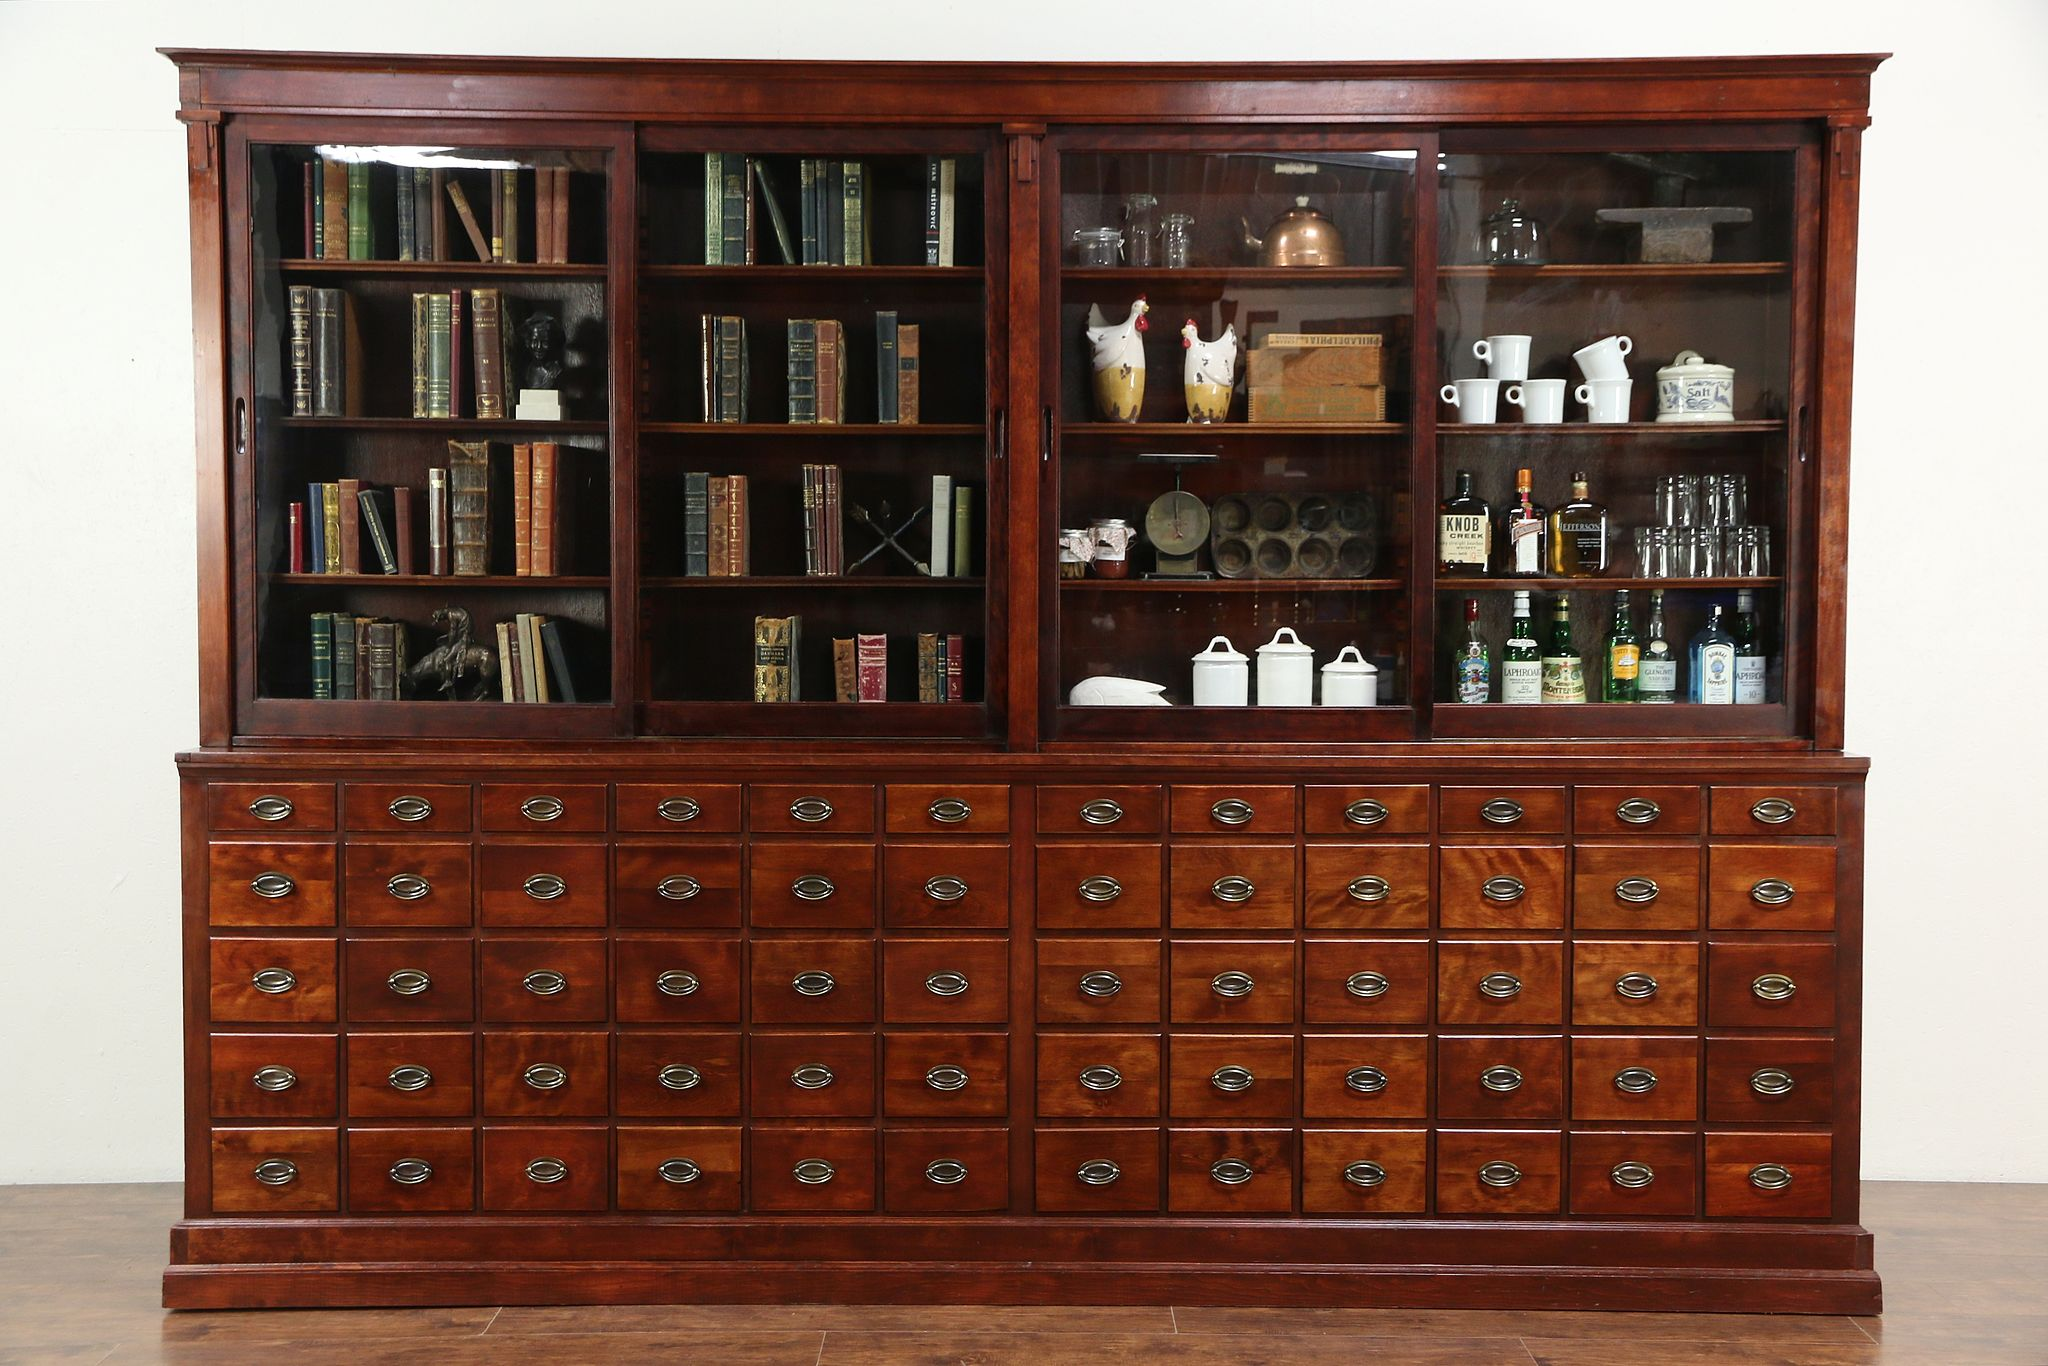 Apothecary Or Drug Store Antique Cabinet, 60 Drawers, Sliding Glass Doors  ...